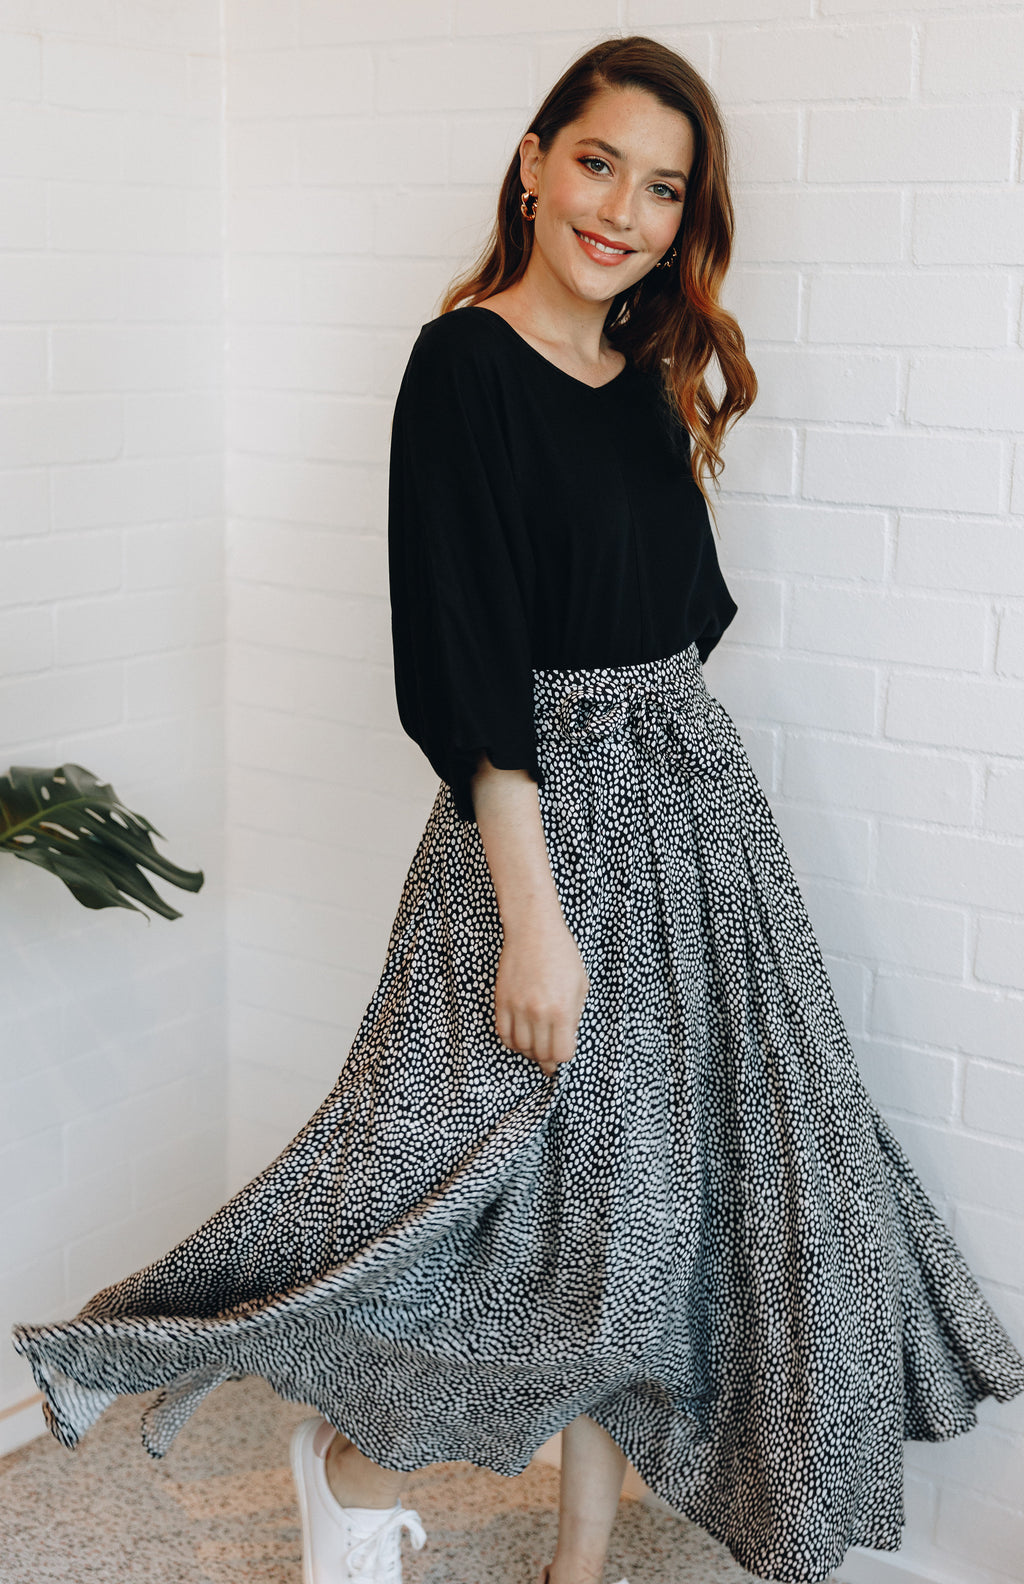 Twirl Tie Skirt in Vanilla Bean